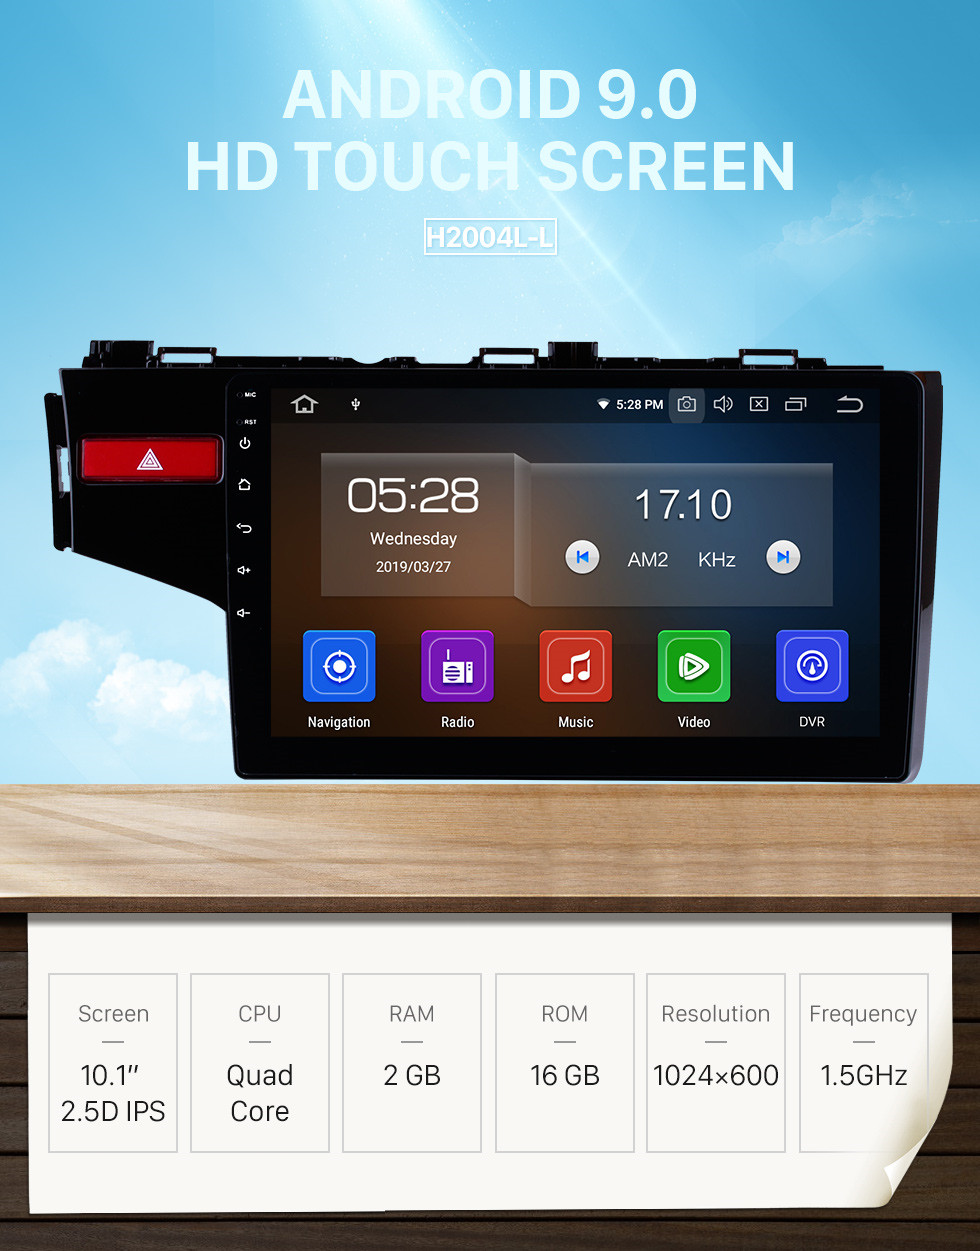 Seicane 10.1 Inch OEM Android 9.0 Radio Capacitive Touch Screen For 2014 2015 Honda FIT Support WiFi Bluetooth GPS Navigation system TPMS DVR OBD II AUX Headrest Monitor Control Video Rear camera USB SD